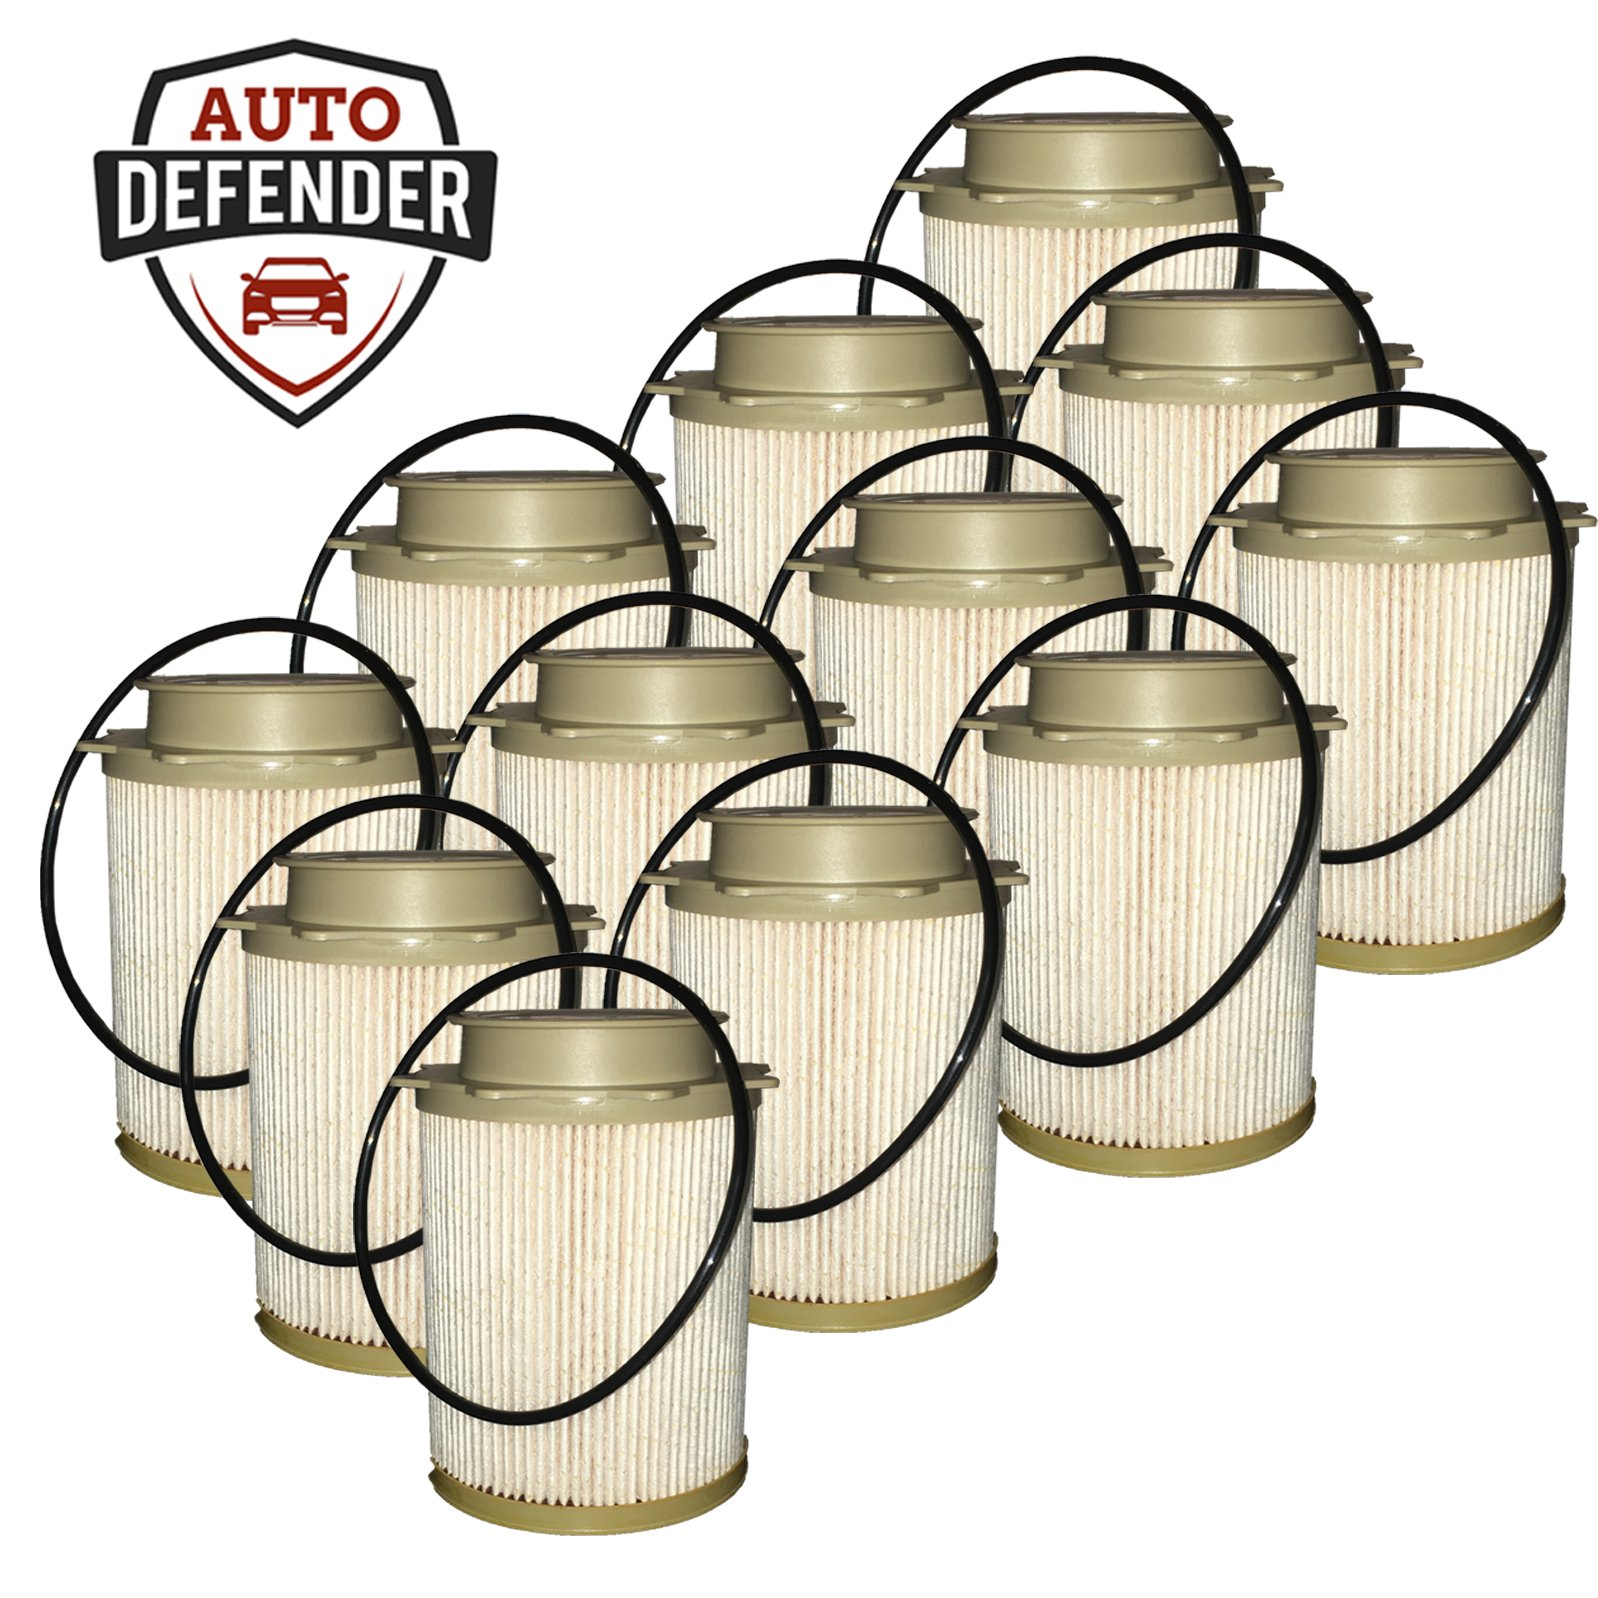 Auto Defender DF401-AD Fuel Filter for 6.7L Turbo Engines (12) by Auto Defender